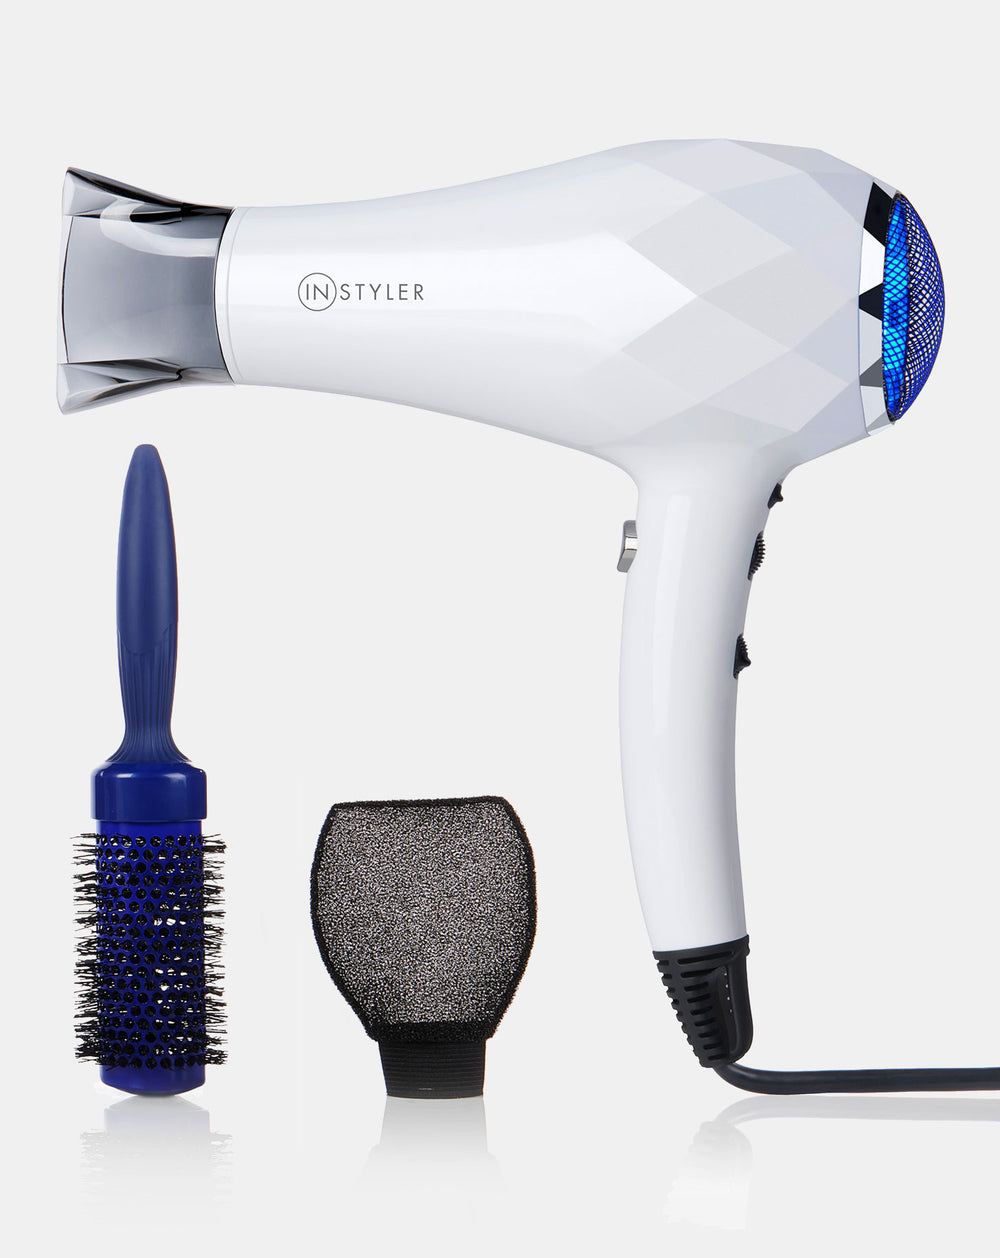 InStyler Turbo Ionic Dryer Gift Set